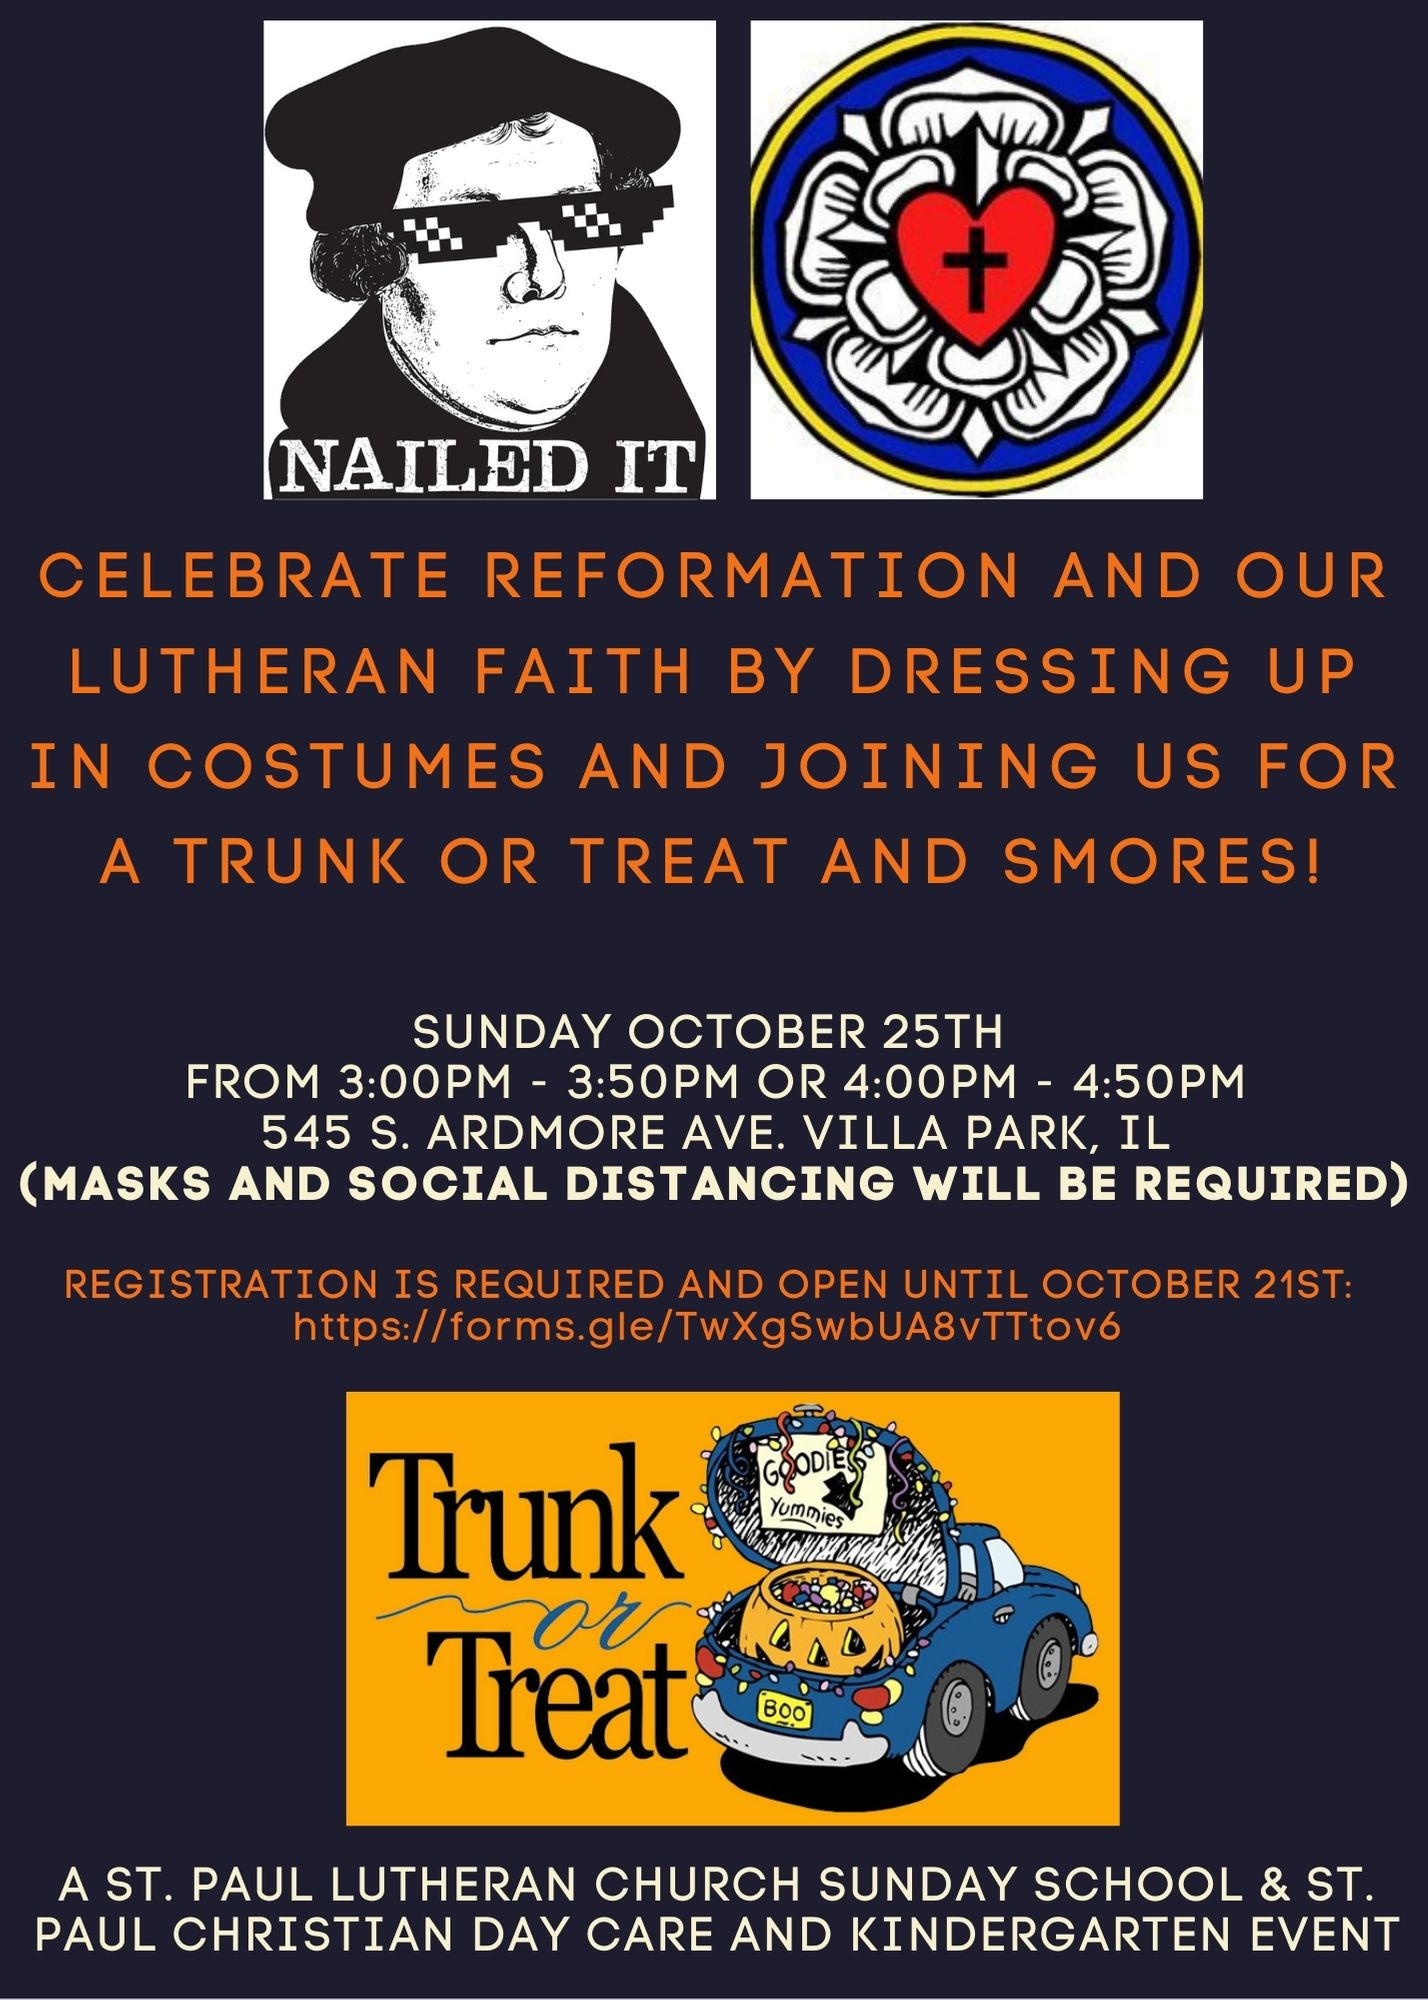 Flyer for trunk or treat on October 25